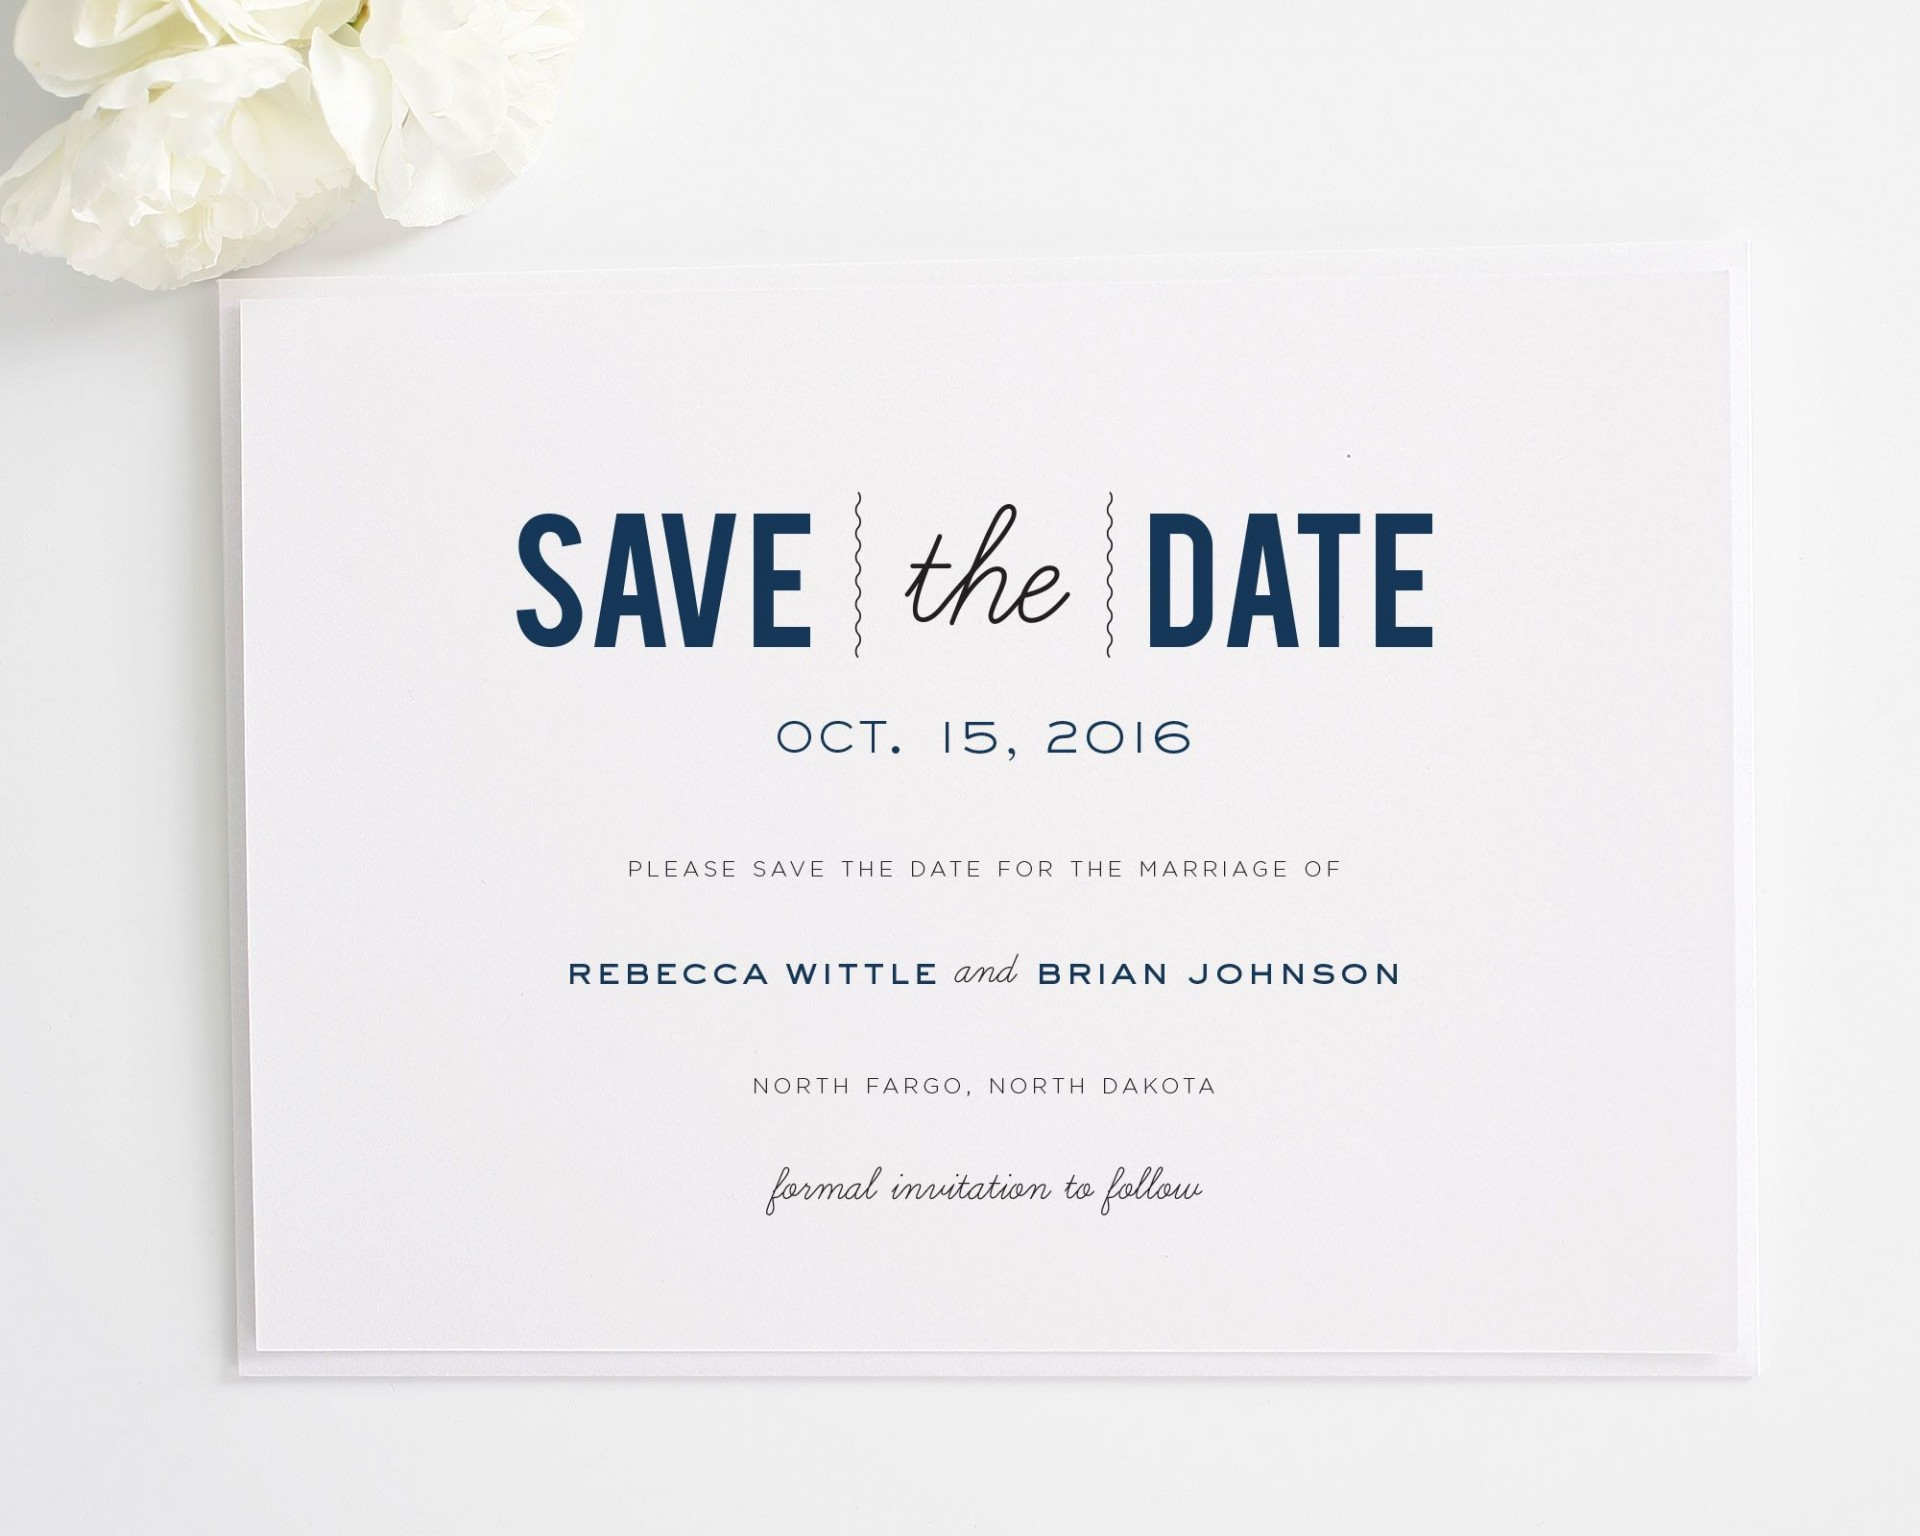 004 Wonderful Save The Date Word Template Idea  Free Birthday For Microsoft Postcard Flyer1920